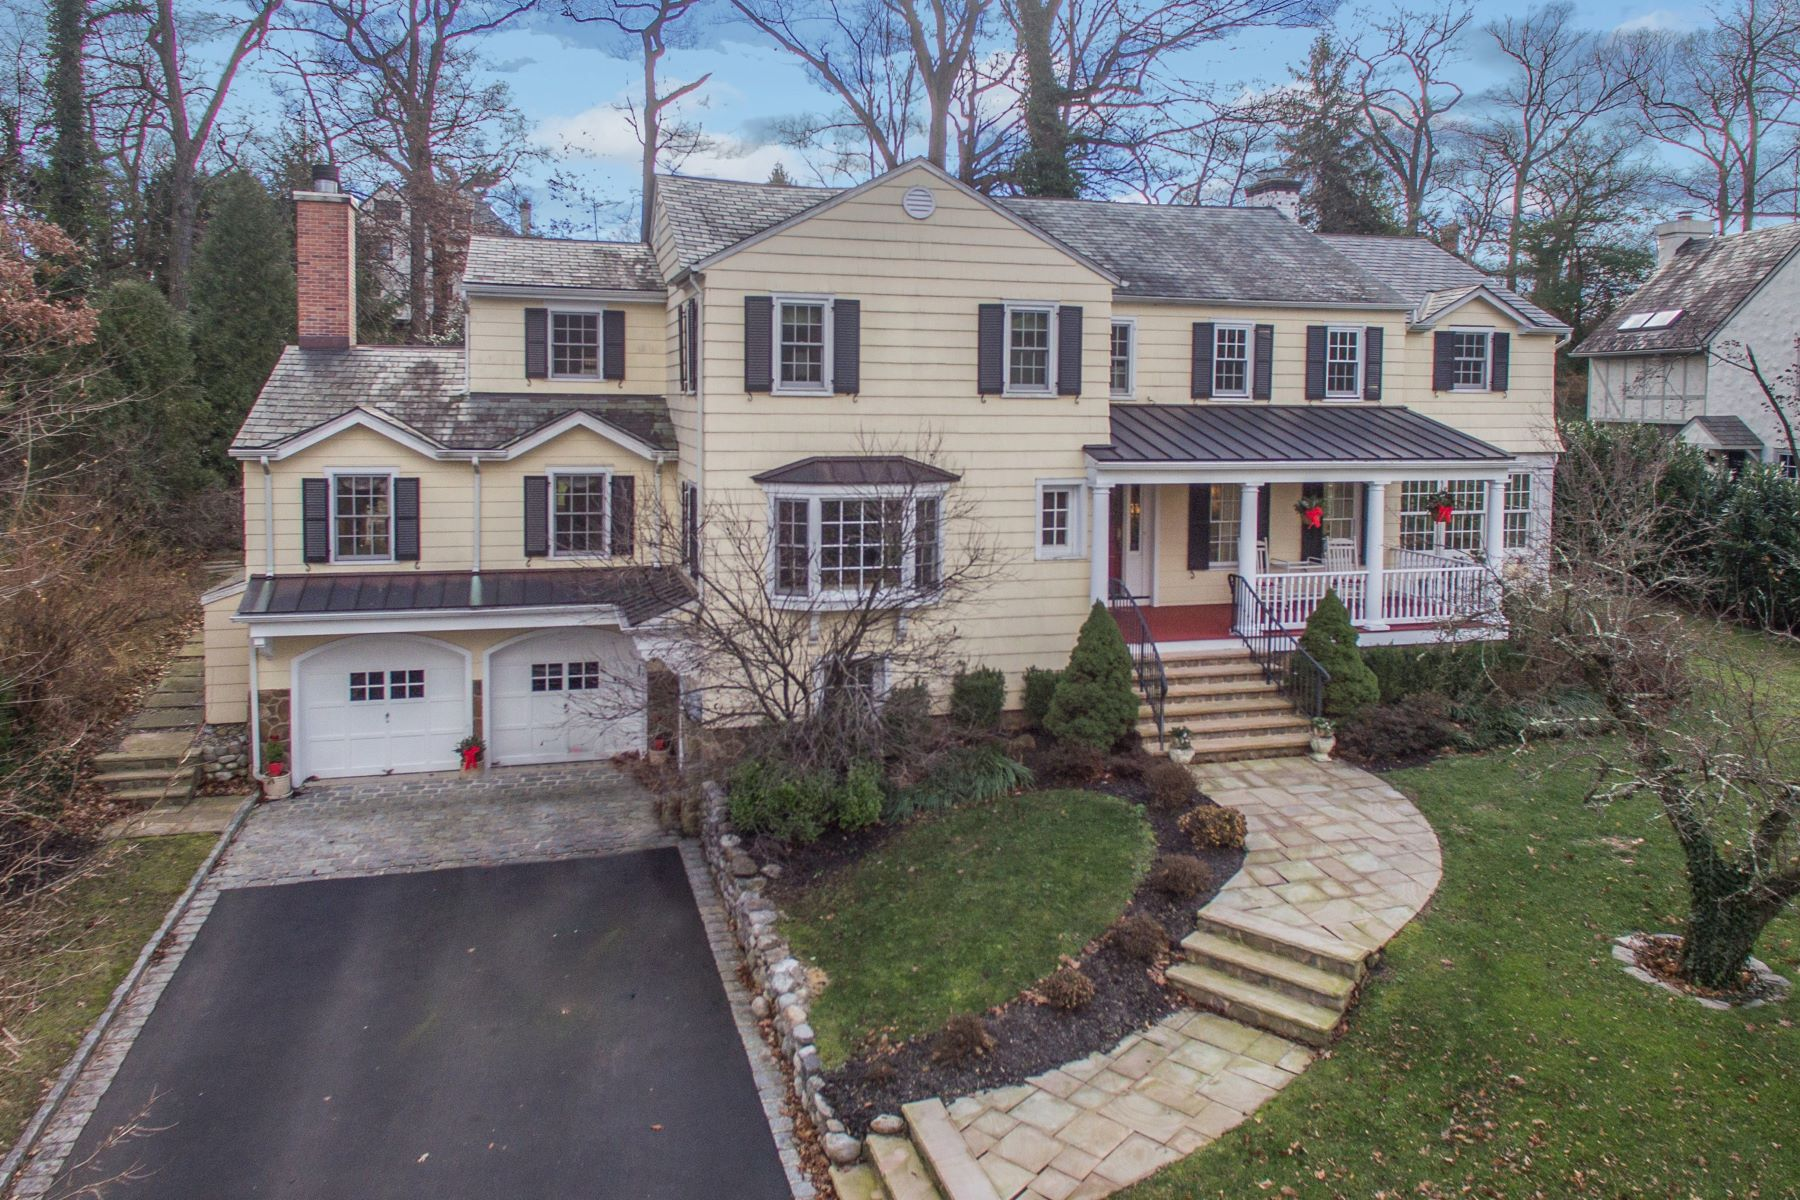 Single Family Home for Sale at Classic Northside Colonial 82 Prospect Hill Avenue, Summit, New Jersey 07901 United States